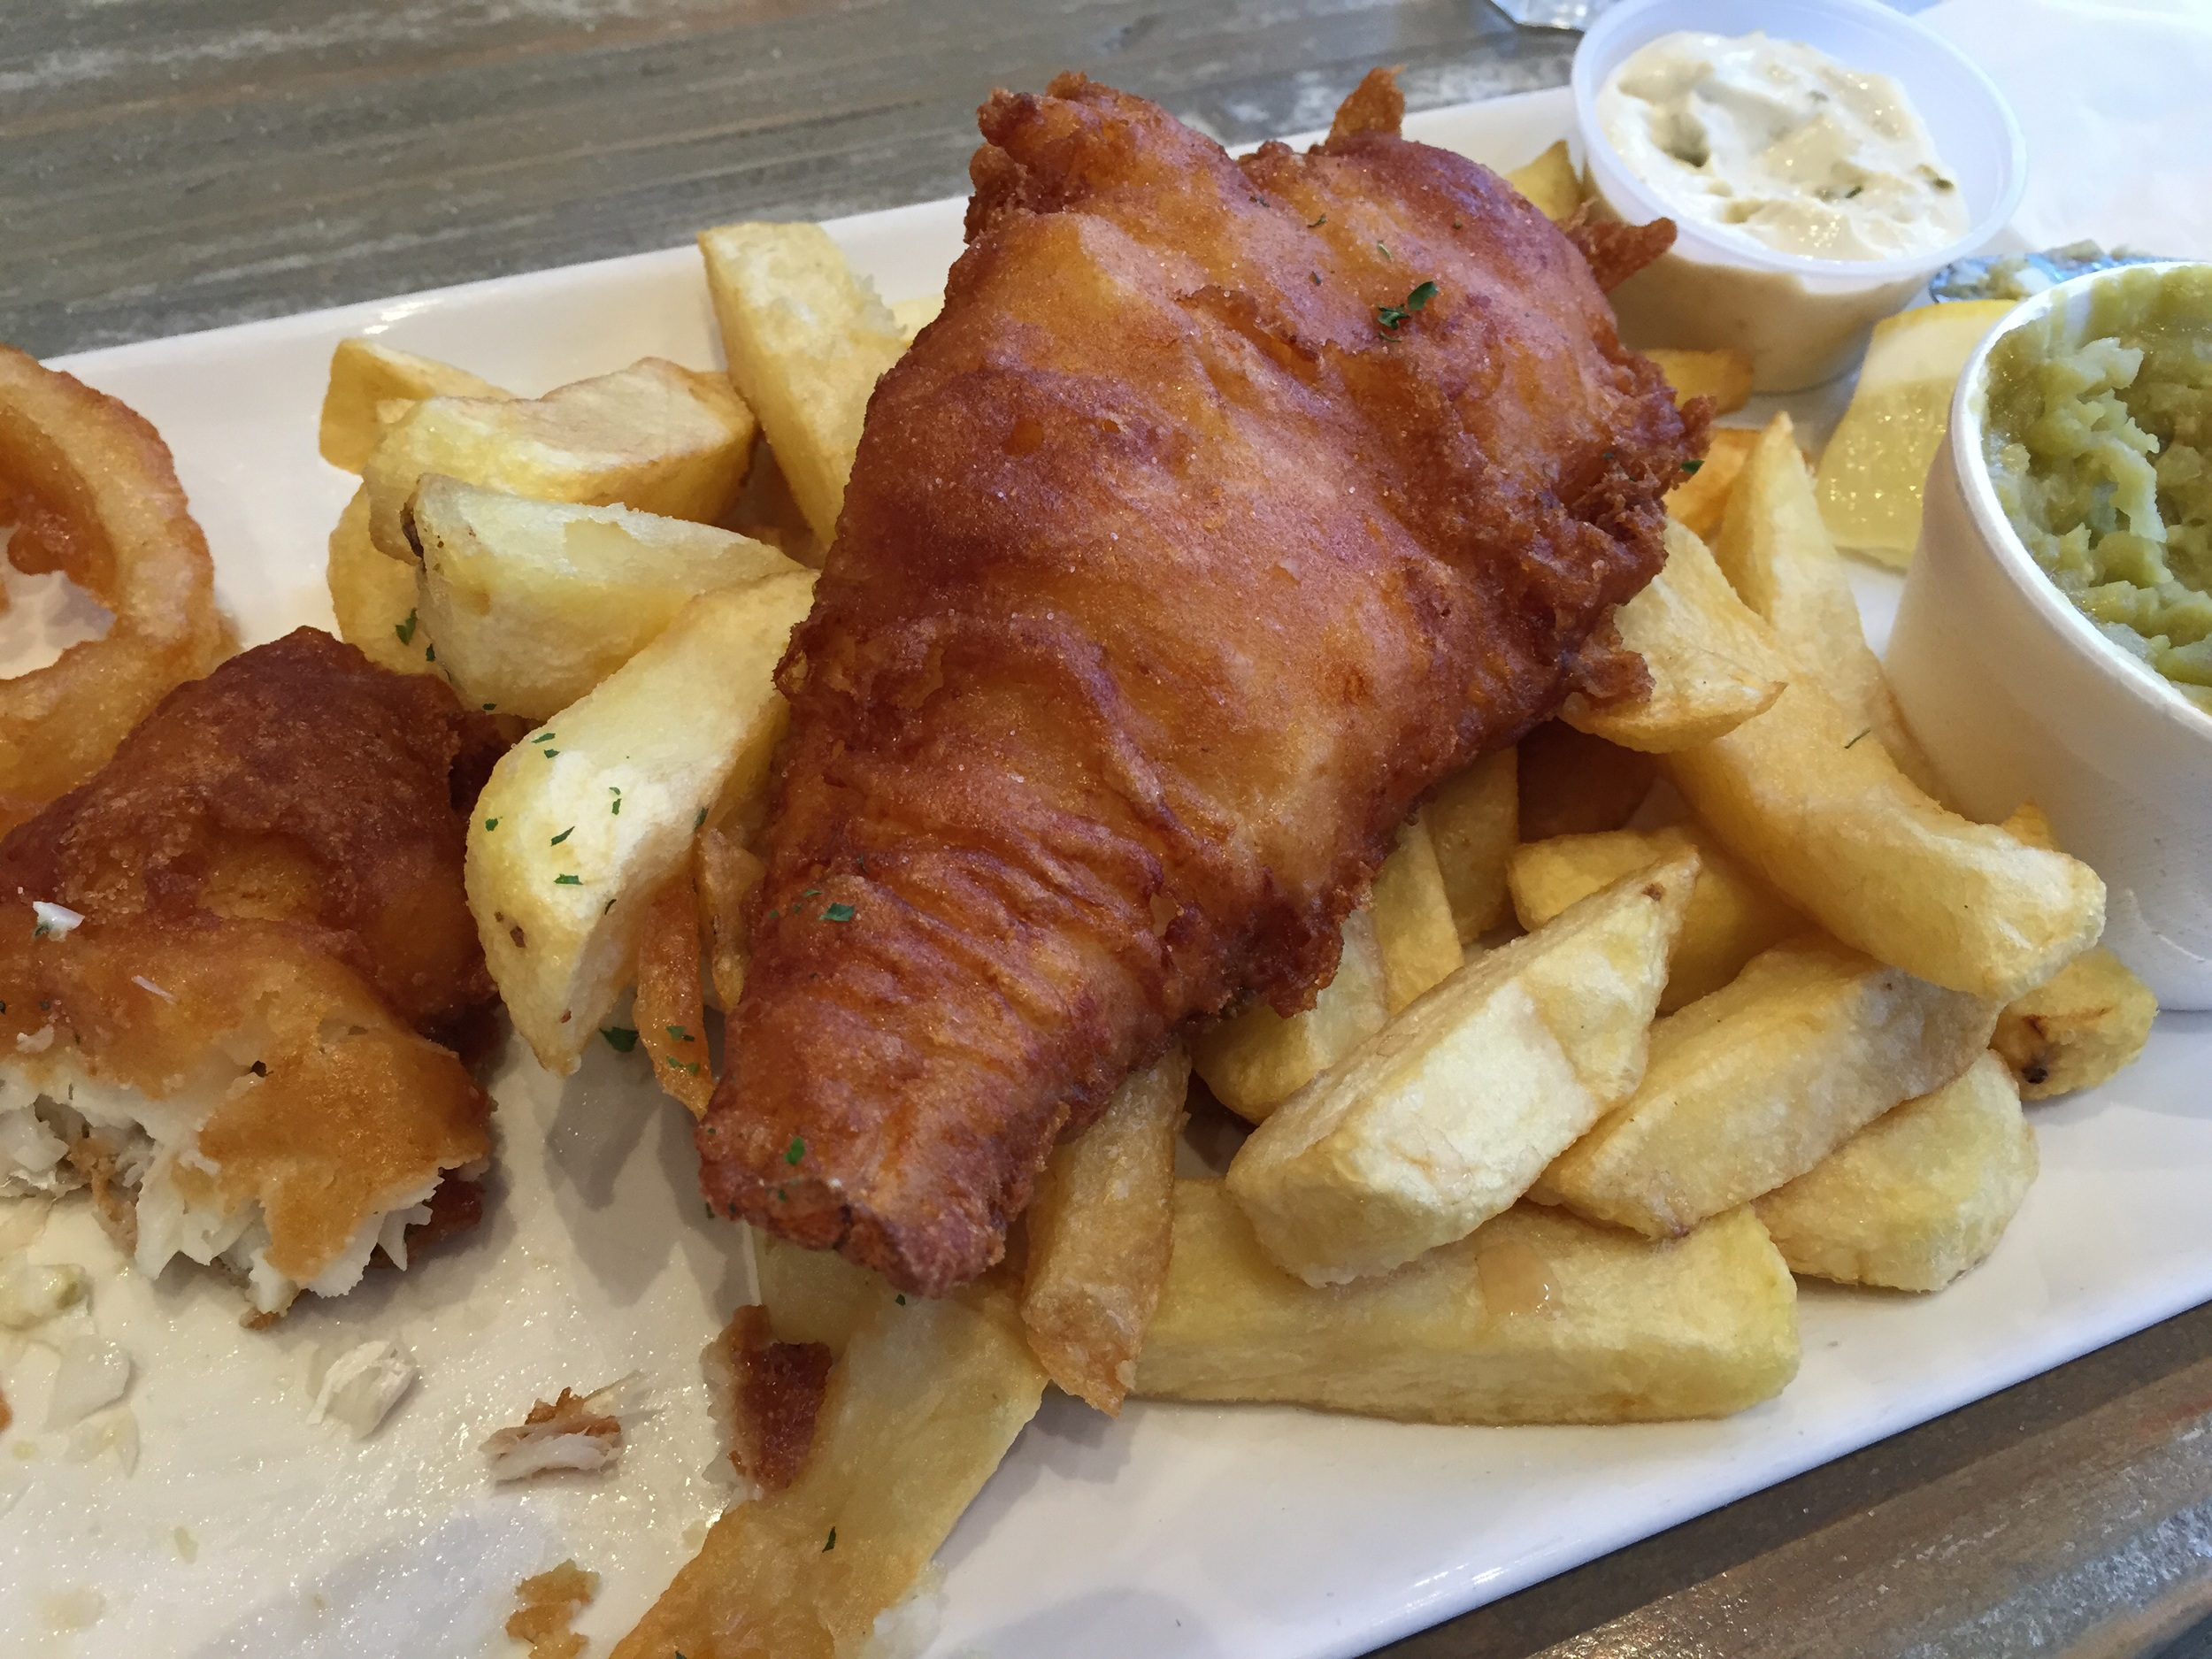 Two HUGE pieces of fish, fresh cut chips, homemade tartar sauce and mushy peas. Both of my fish pieces were the size of two of my hands put together.